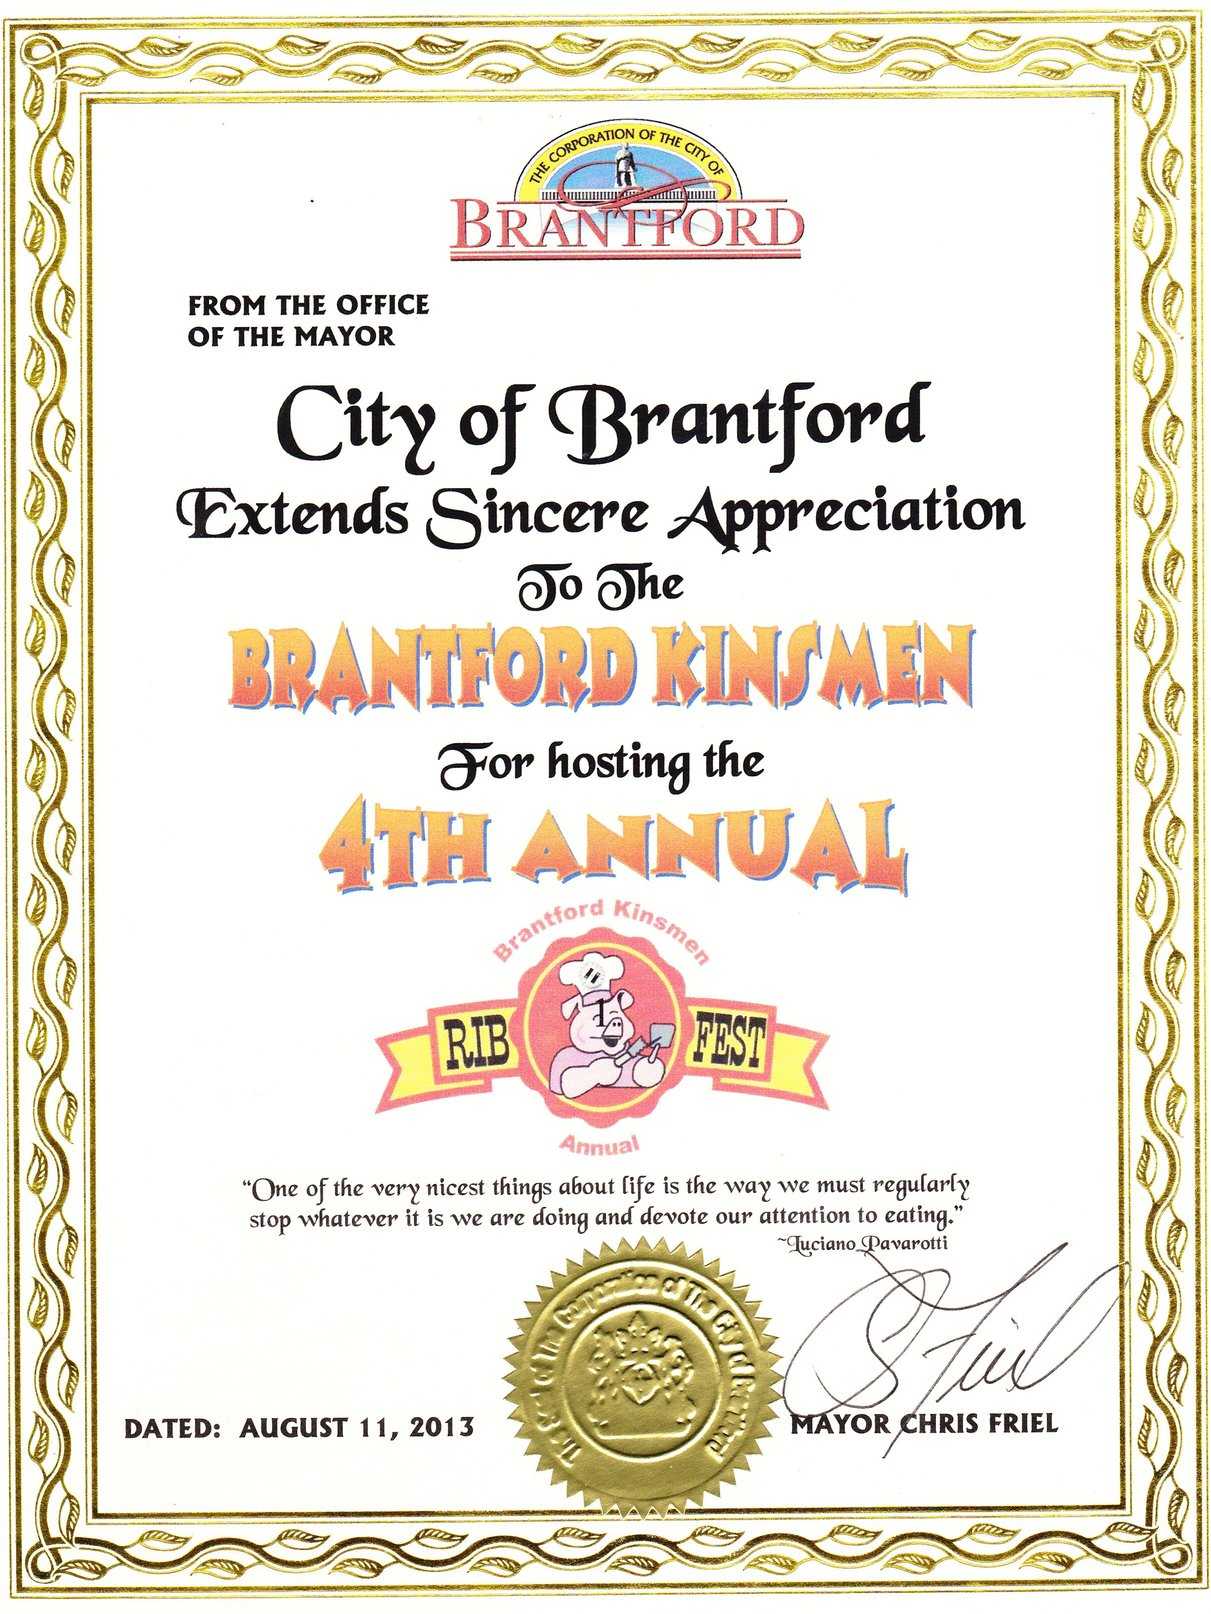 Chris Friel Brantford Ribfest Certificate